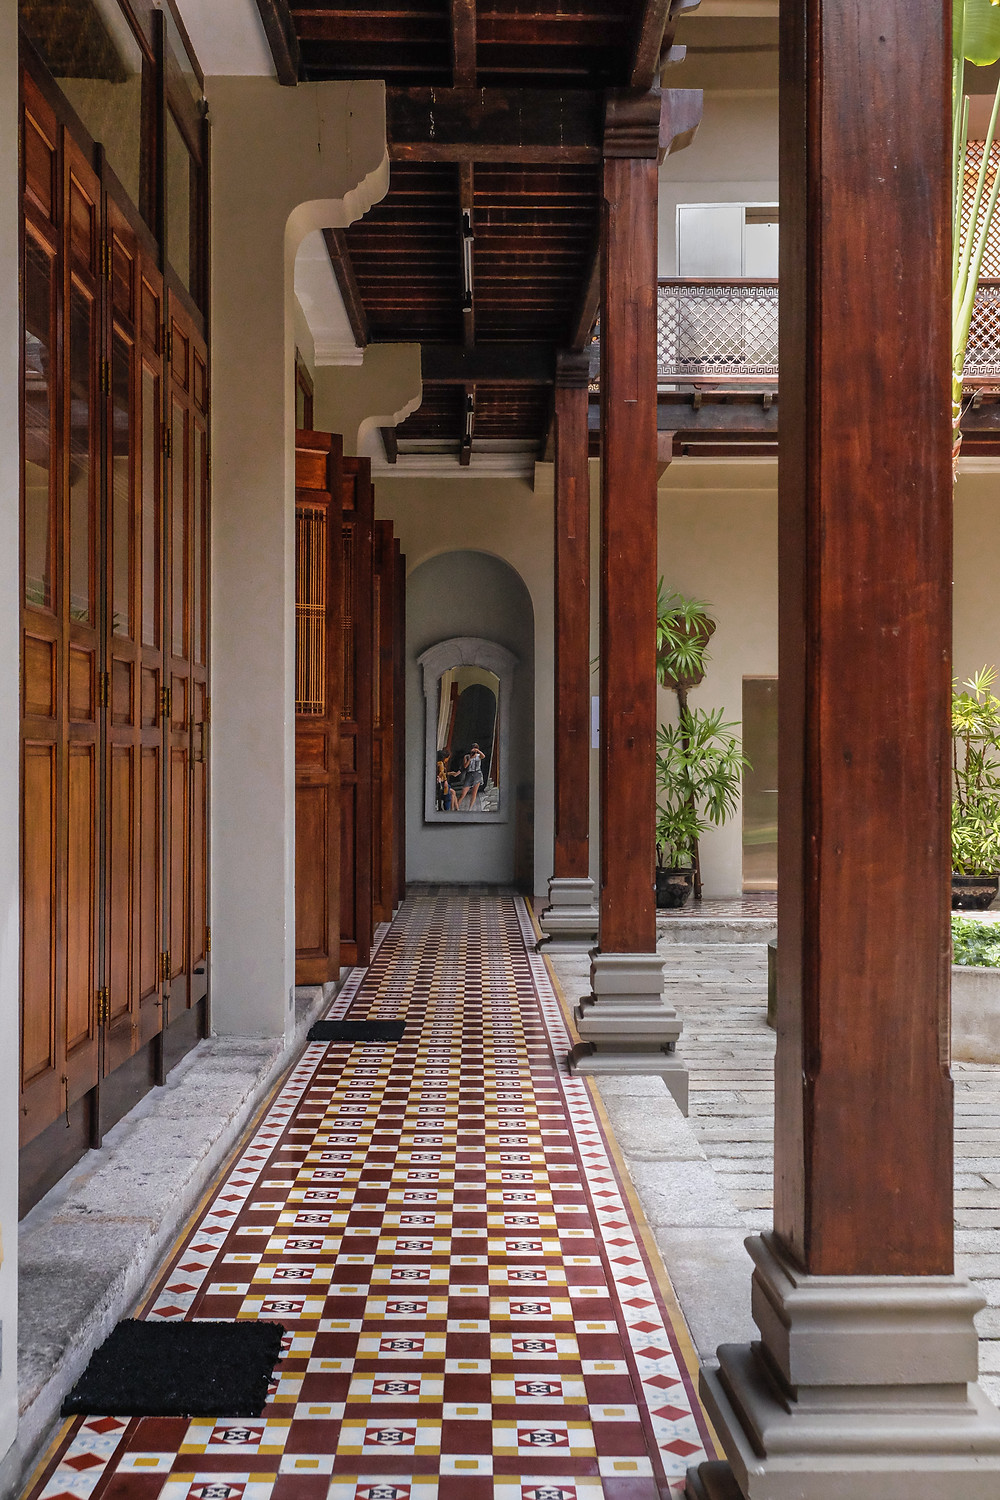 Seven Terraces Hotel courtyard walkway with Peranakan timber doors and colourful tiles, photography by RollingBear Travels.